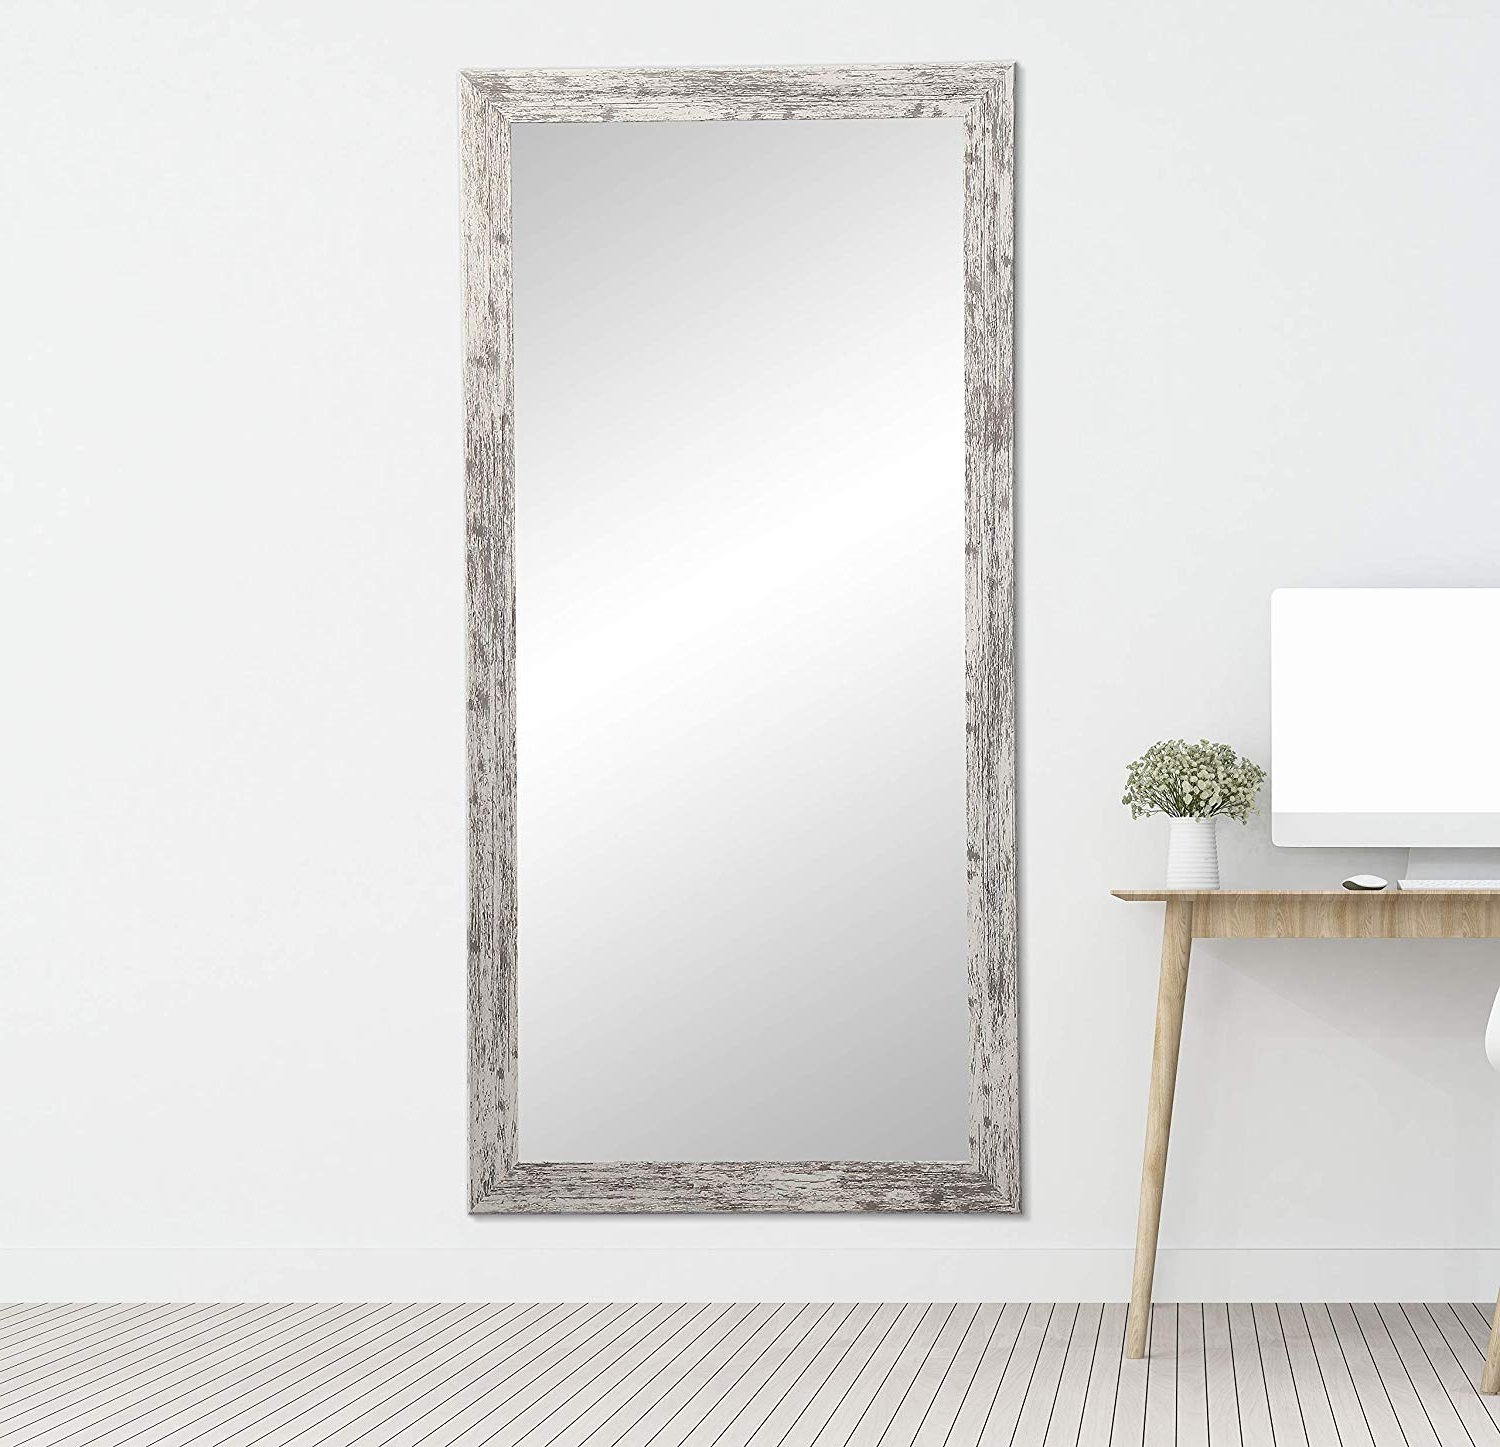 Brandtworks Barn Wood Full Length Floor Vanity Wall Mirror, 32 X 71, Heavy  Distressed White/gray Pertaining To Famous Floor Wall Mirrors (View 2 of 20)